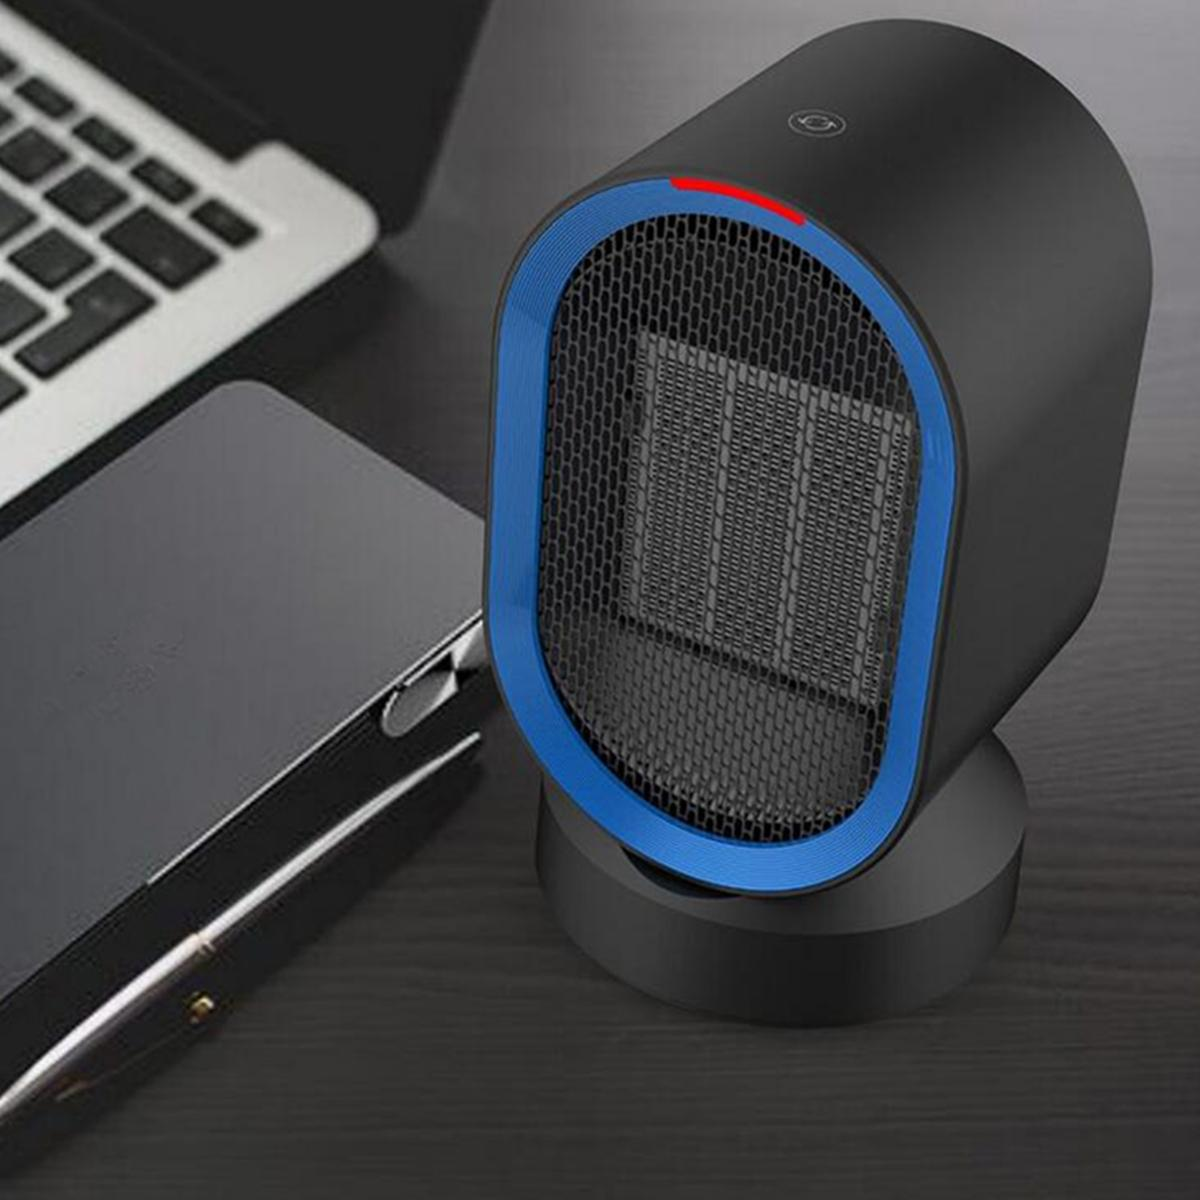 600W Electric Wall Heater Mini Portable Indoor Heating Air Heating Warmer Mini Heaters Silent Office Household Appliances Black600W Electric Wall Heater Mini Portable Indoor Heating Air Heating Warmer Mini Heaters Silent Office Household Appliances Black